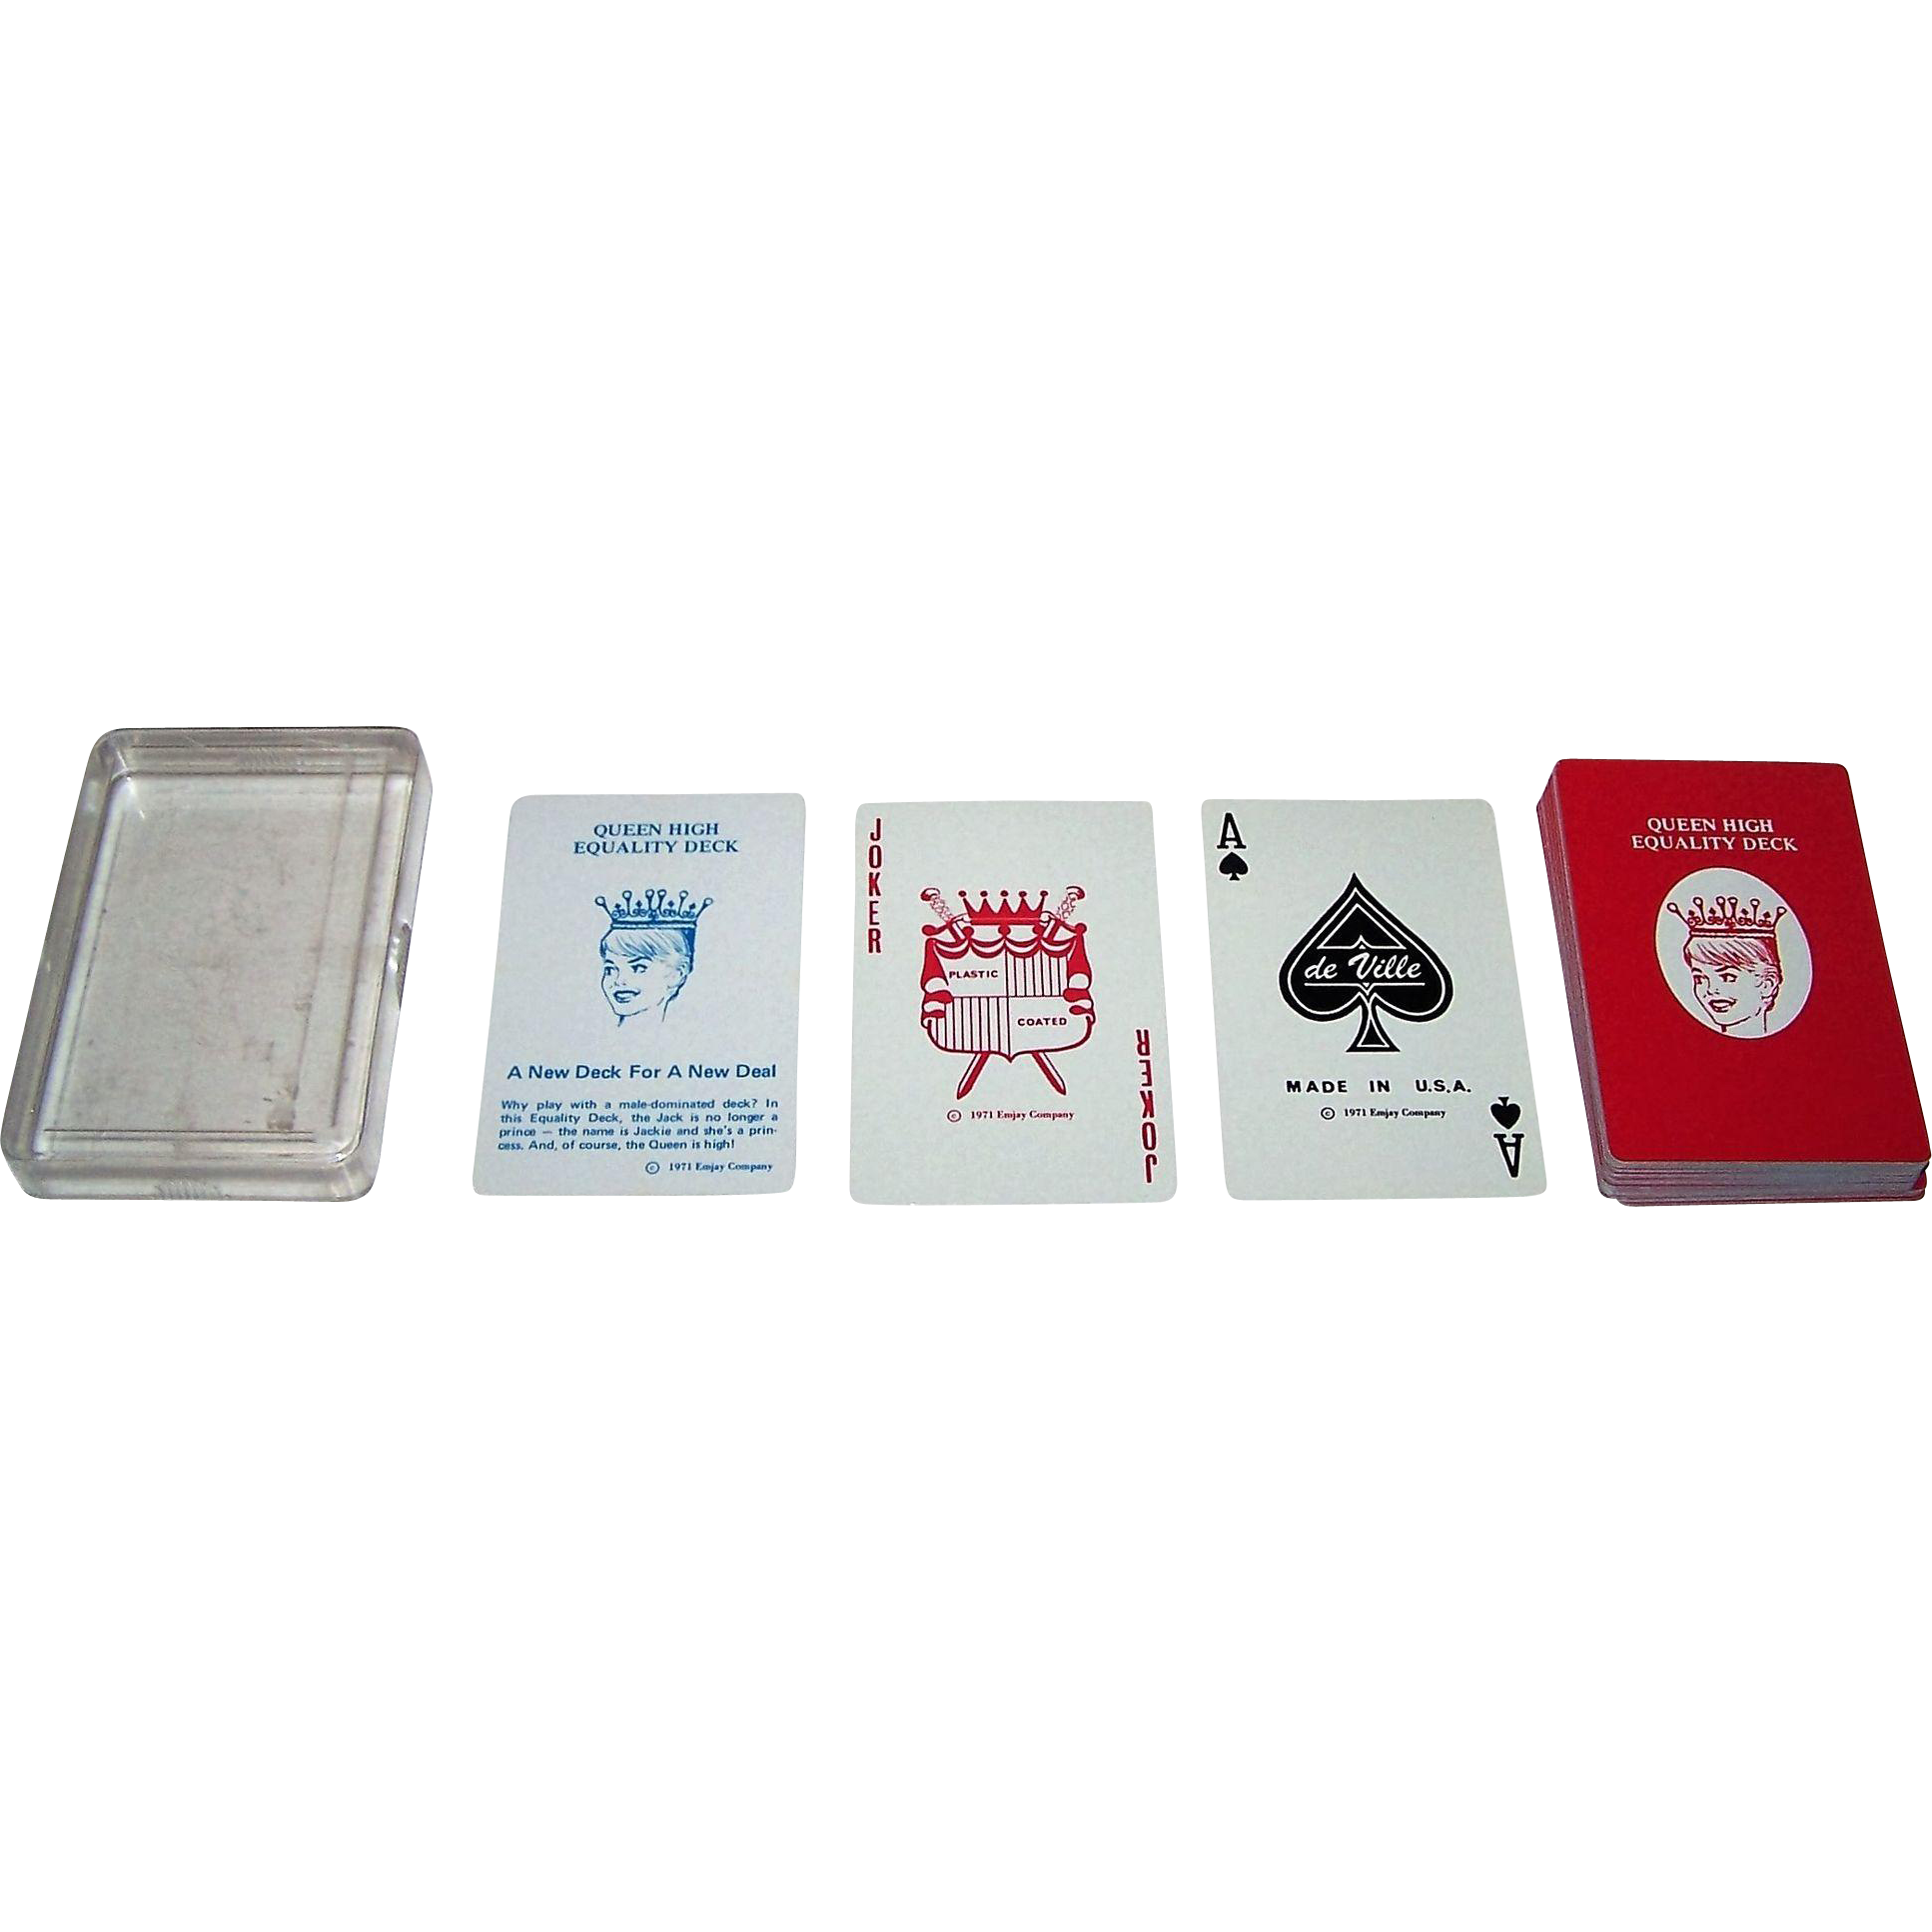 "USPC (de Ville Brand) ""Queen High Equality Deck"" Playing Cards, Emjay Company Publisher, c.1971"